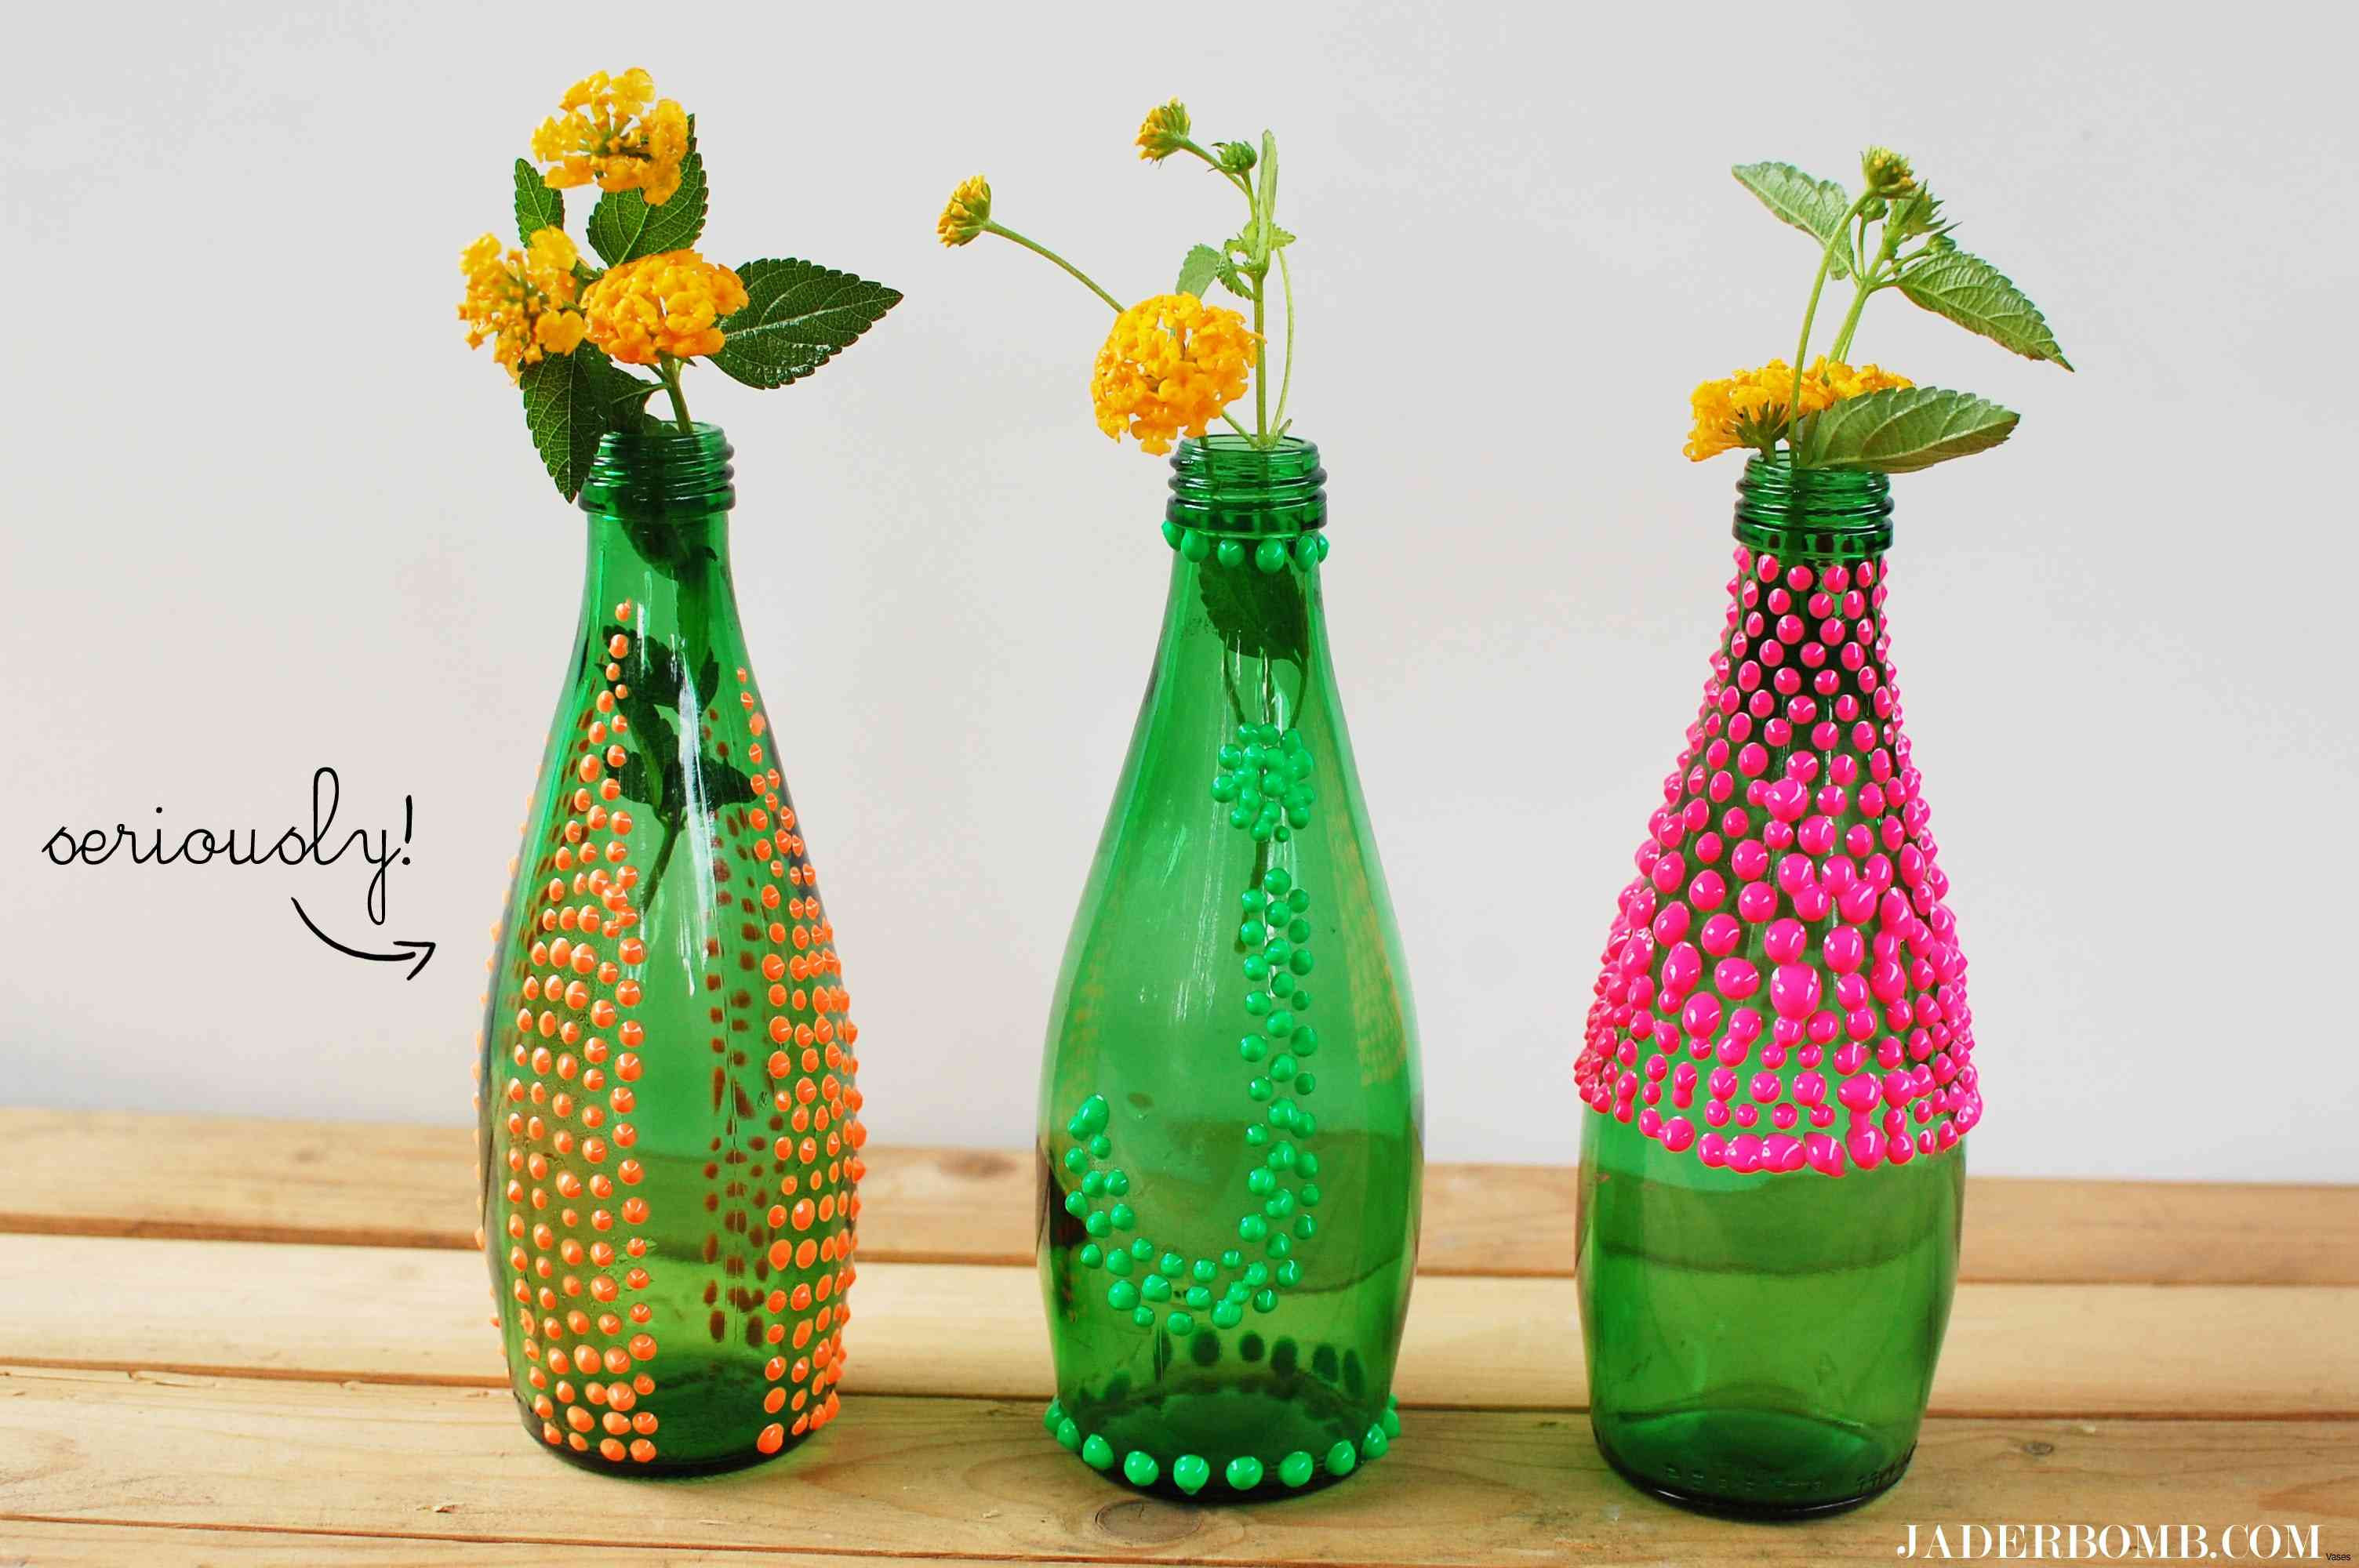 vase painting of large green vase collection paint a picture luxury h vases paint with large green vase collection paint a picture luxury h vases paint vase i 0d with glue and food